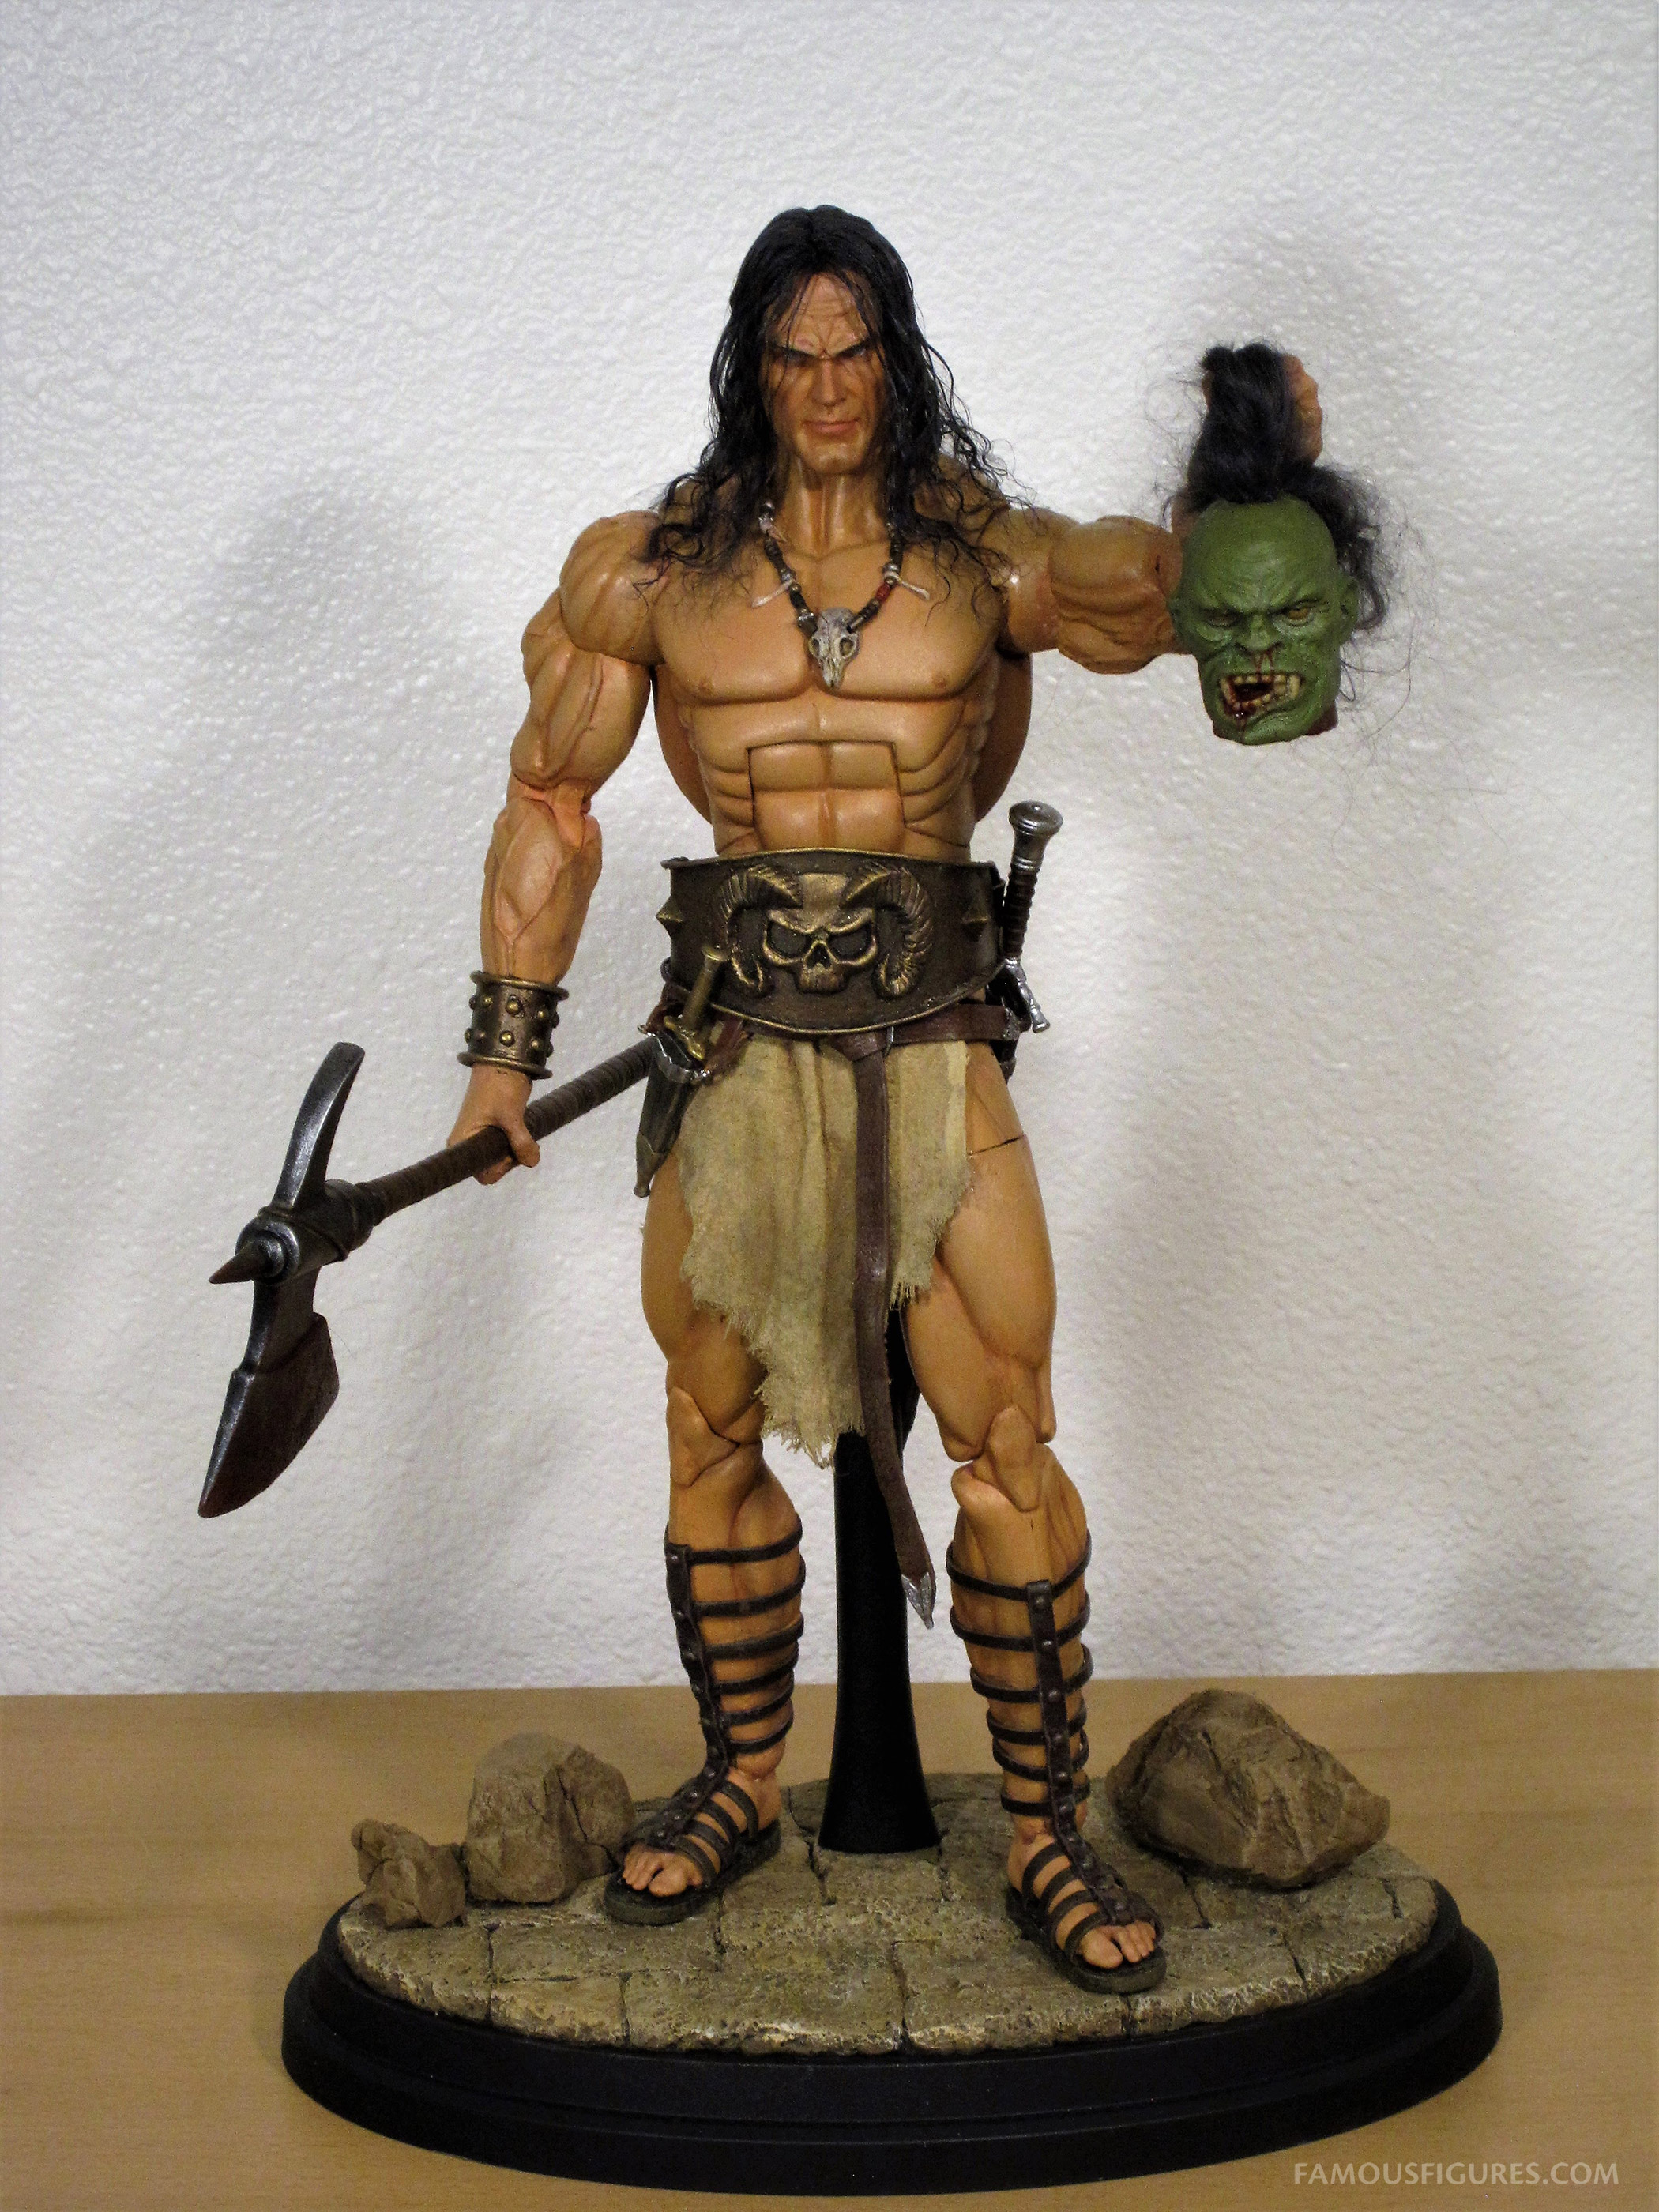 Conan the Barbarian 12-inch figure axe and head